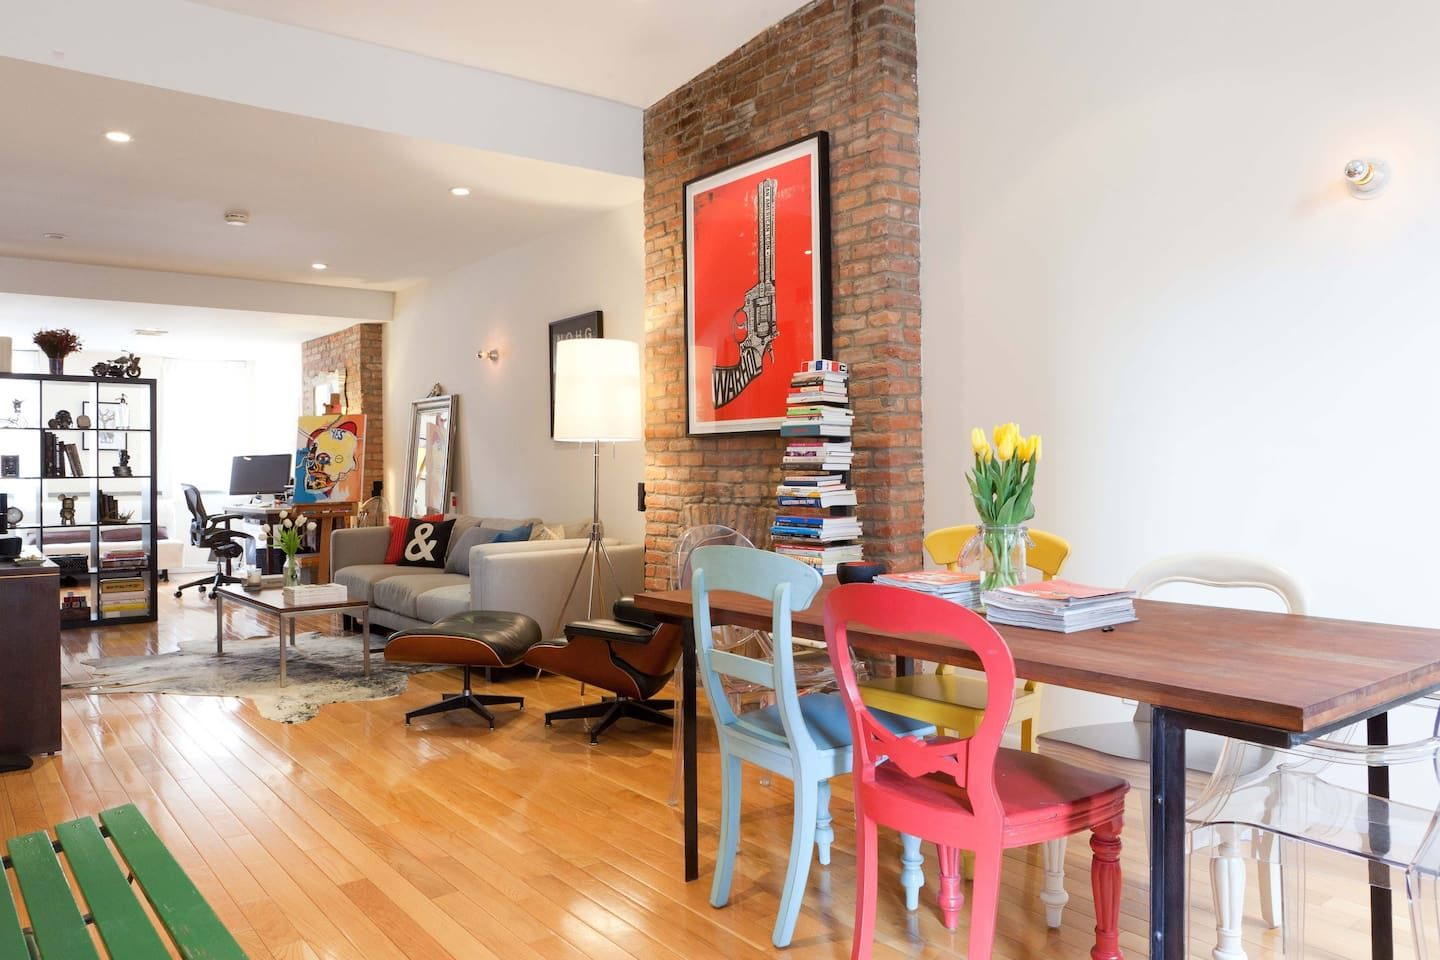 Artist loft union square lofts for rent in new york